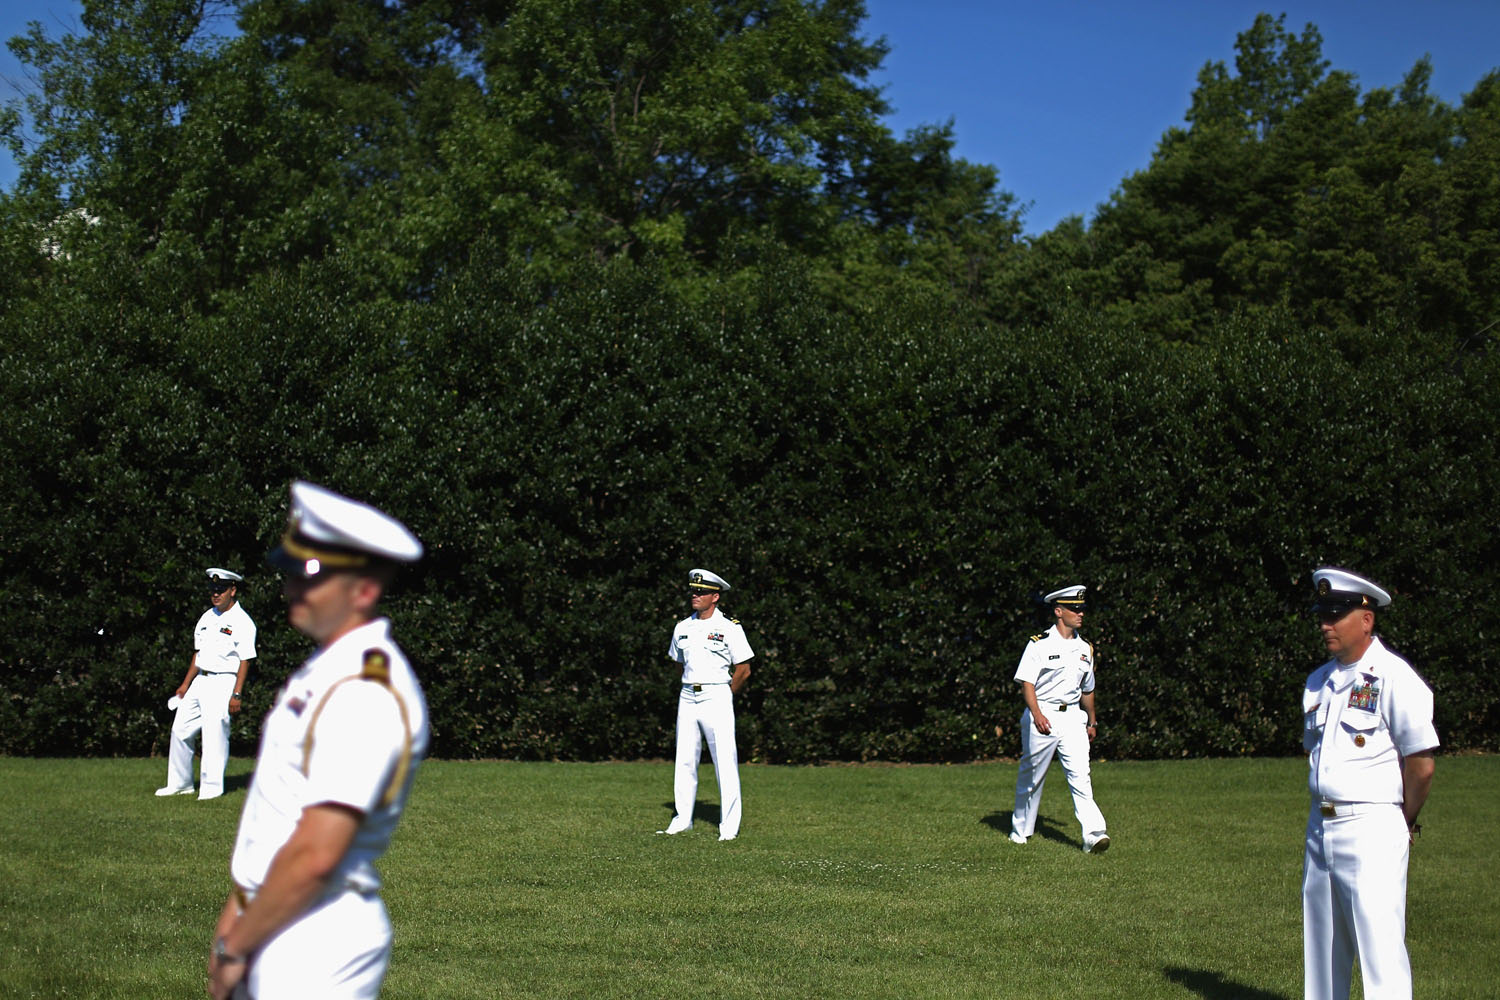 Jun. 23, 2014. U.S. Navy officers wait for the start of an award ceremony to honor the victims and recognize the heroic actions of the people involved in the Washington Navy Yard shootings at Luetze Park at the military base in Washington, DC.